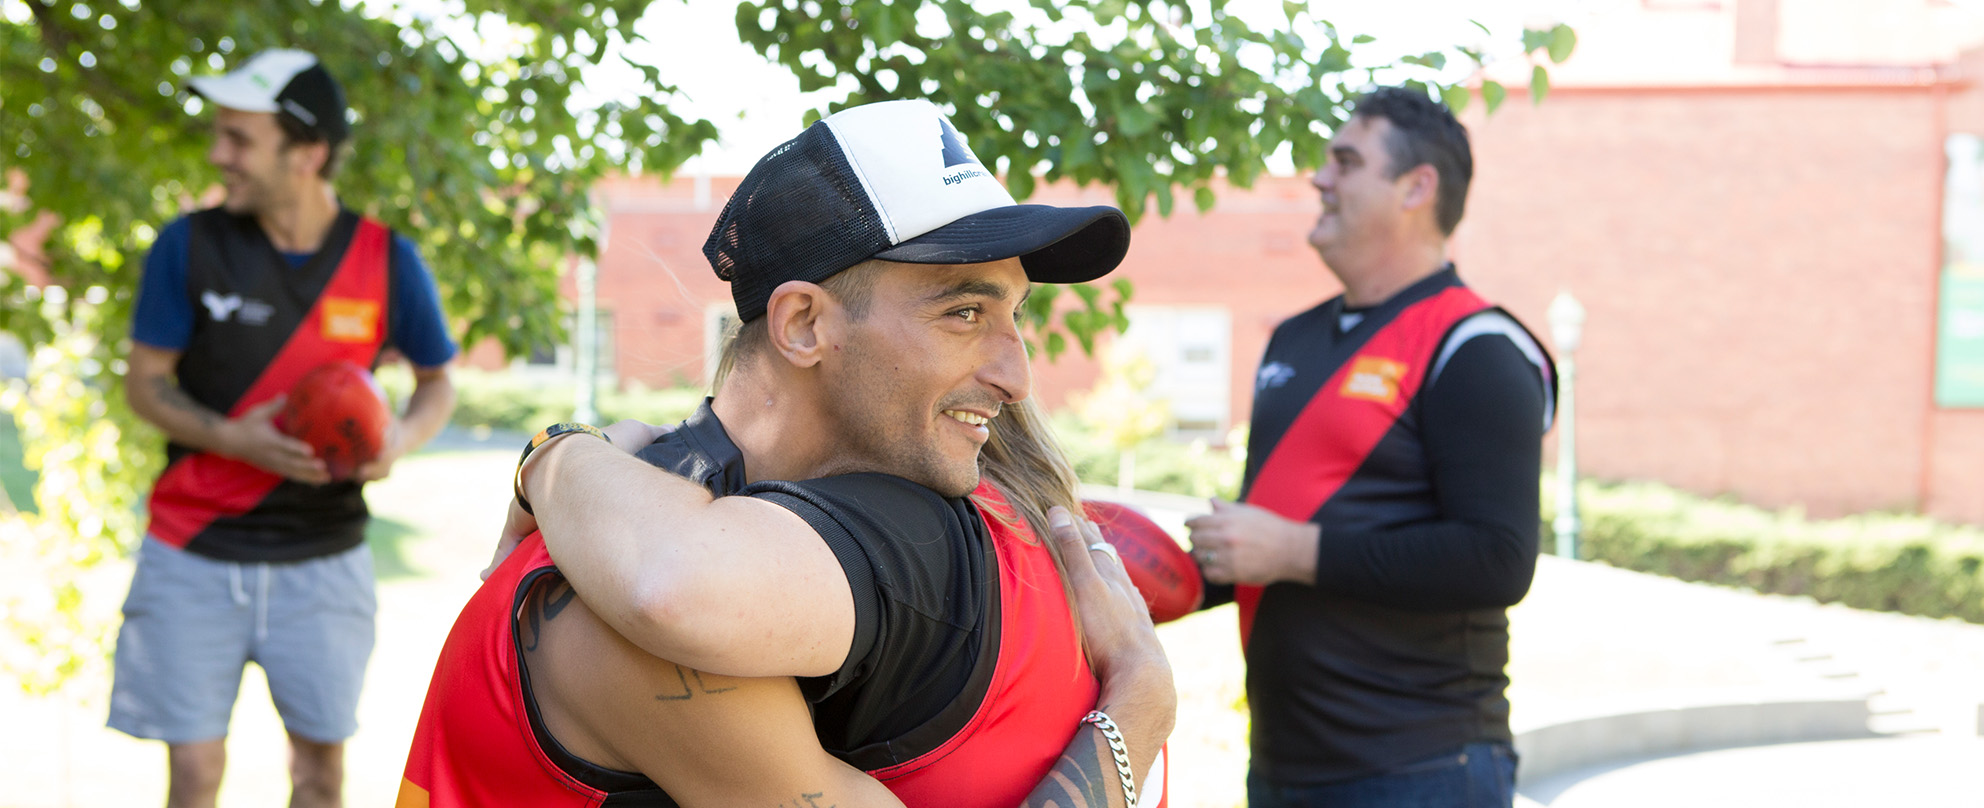 Photo of a young man in a cap hugging a young woman outdoors on a sunny day, two other young men in the background, one holding a football - all are wearing black and red football guernseys.